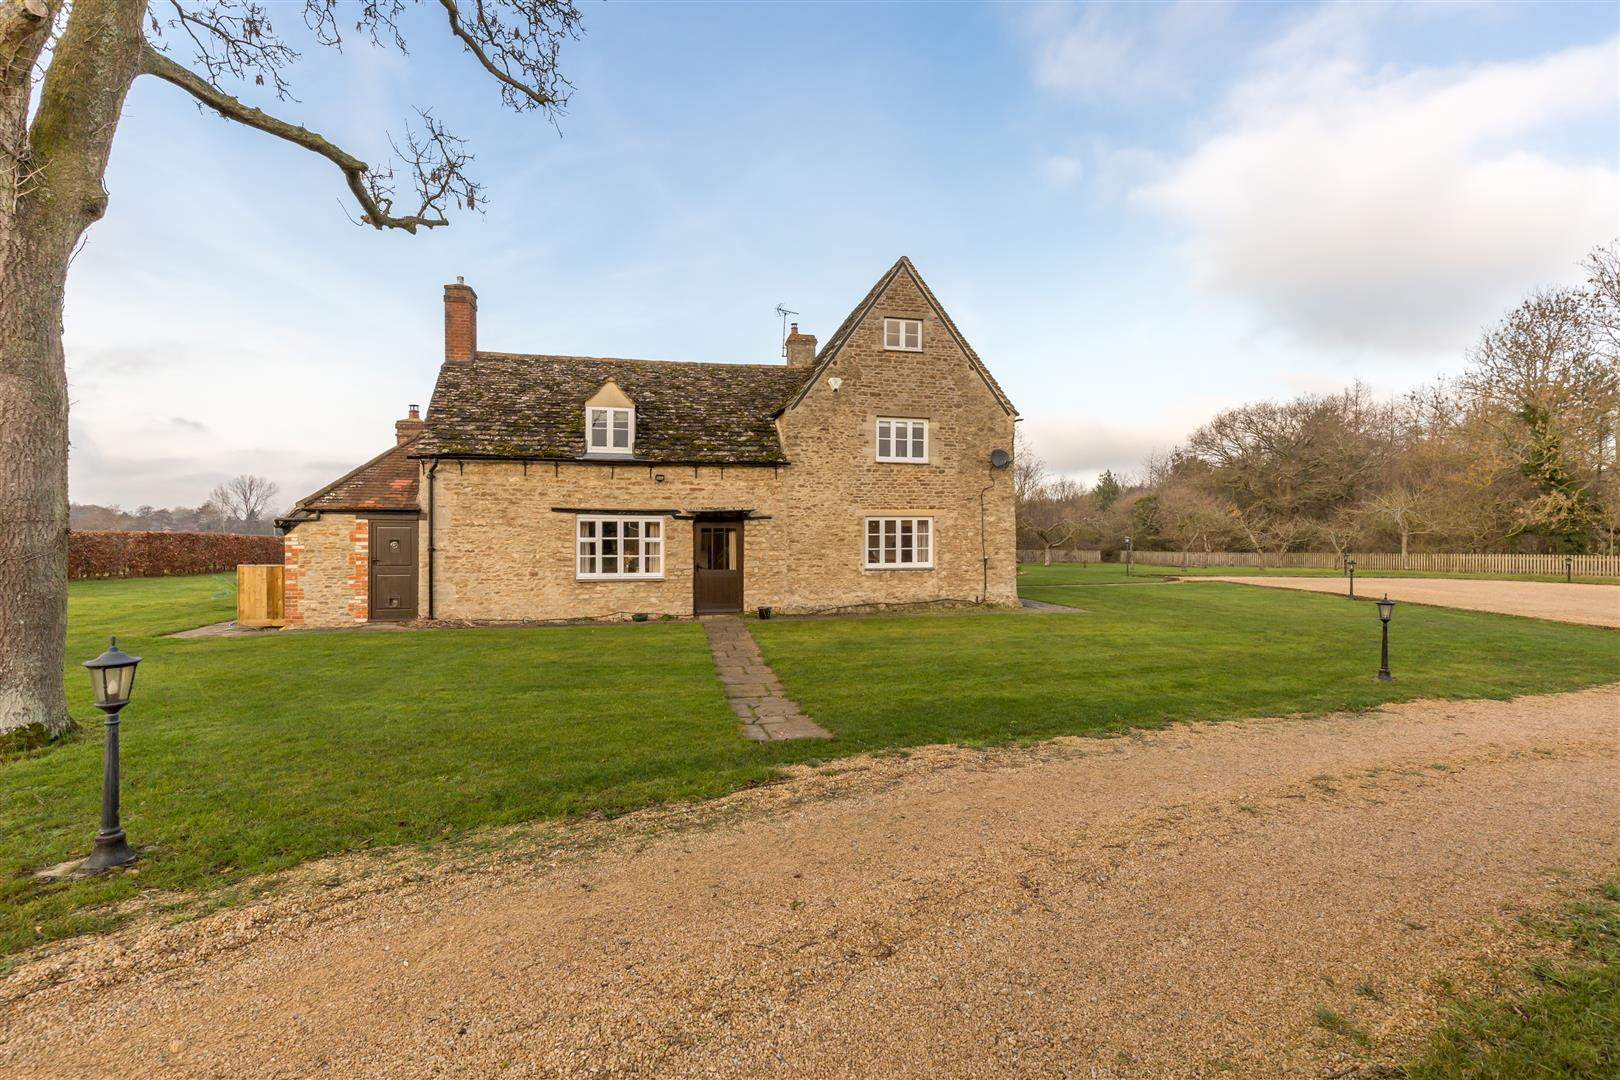 Tubney Manor: A delightful Grade II listed property in the Oxfordshire countryside